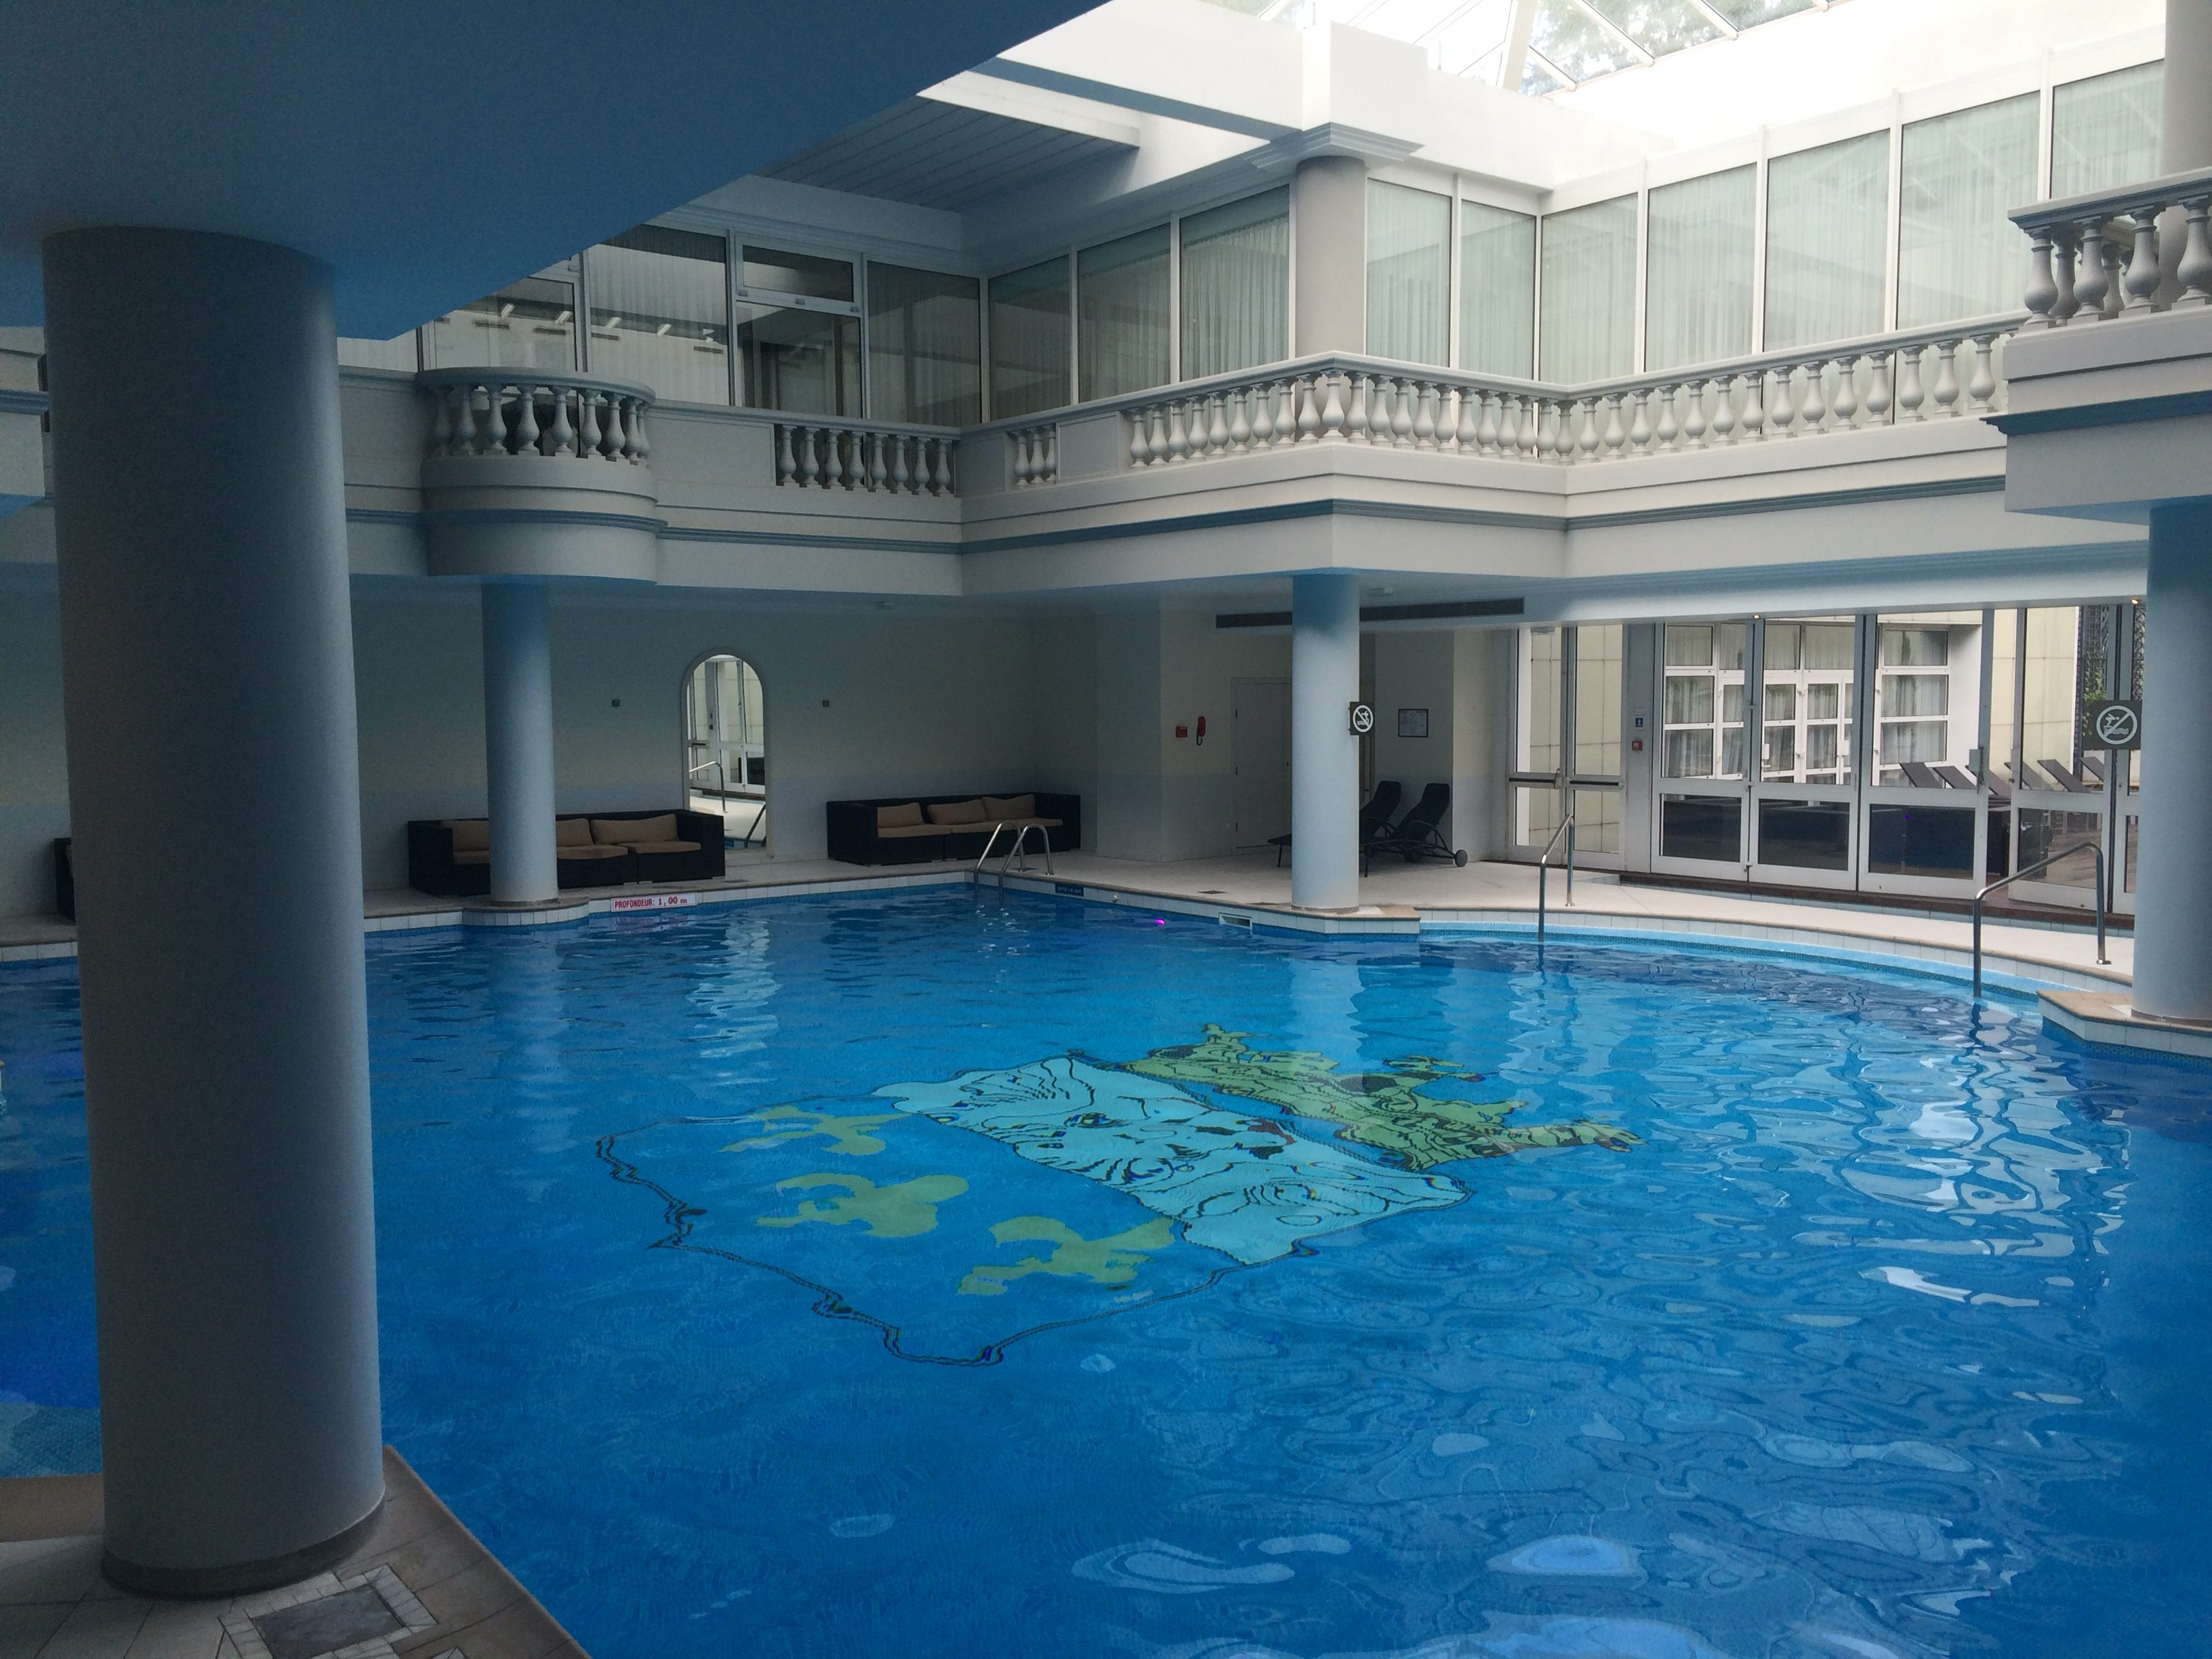 Grecian-style indoor pool at Trianon Palace, A Waldorf Astoria Hotel.